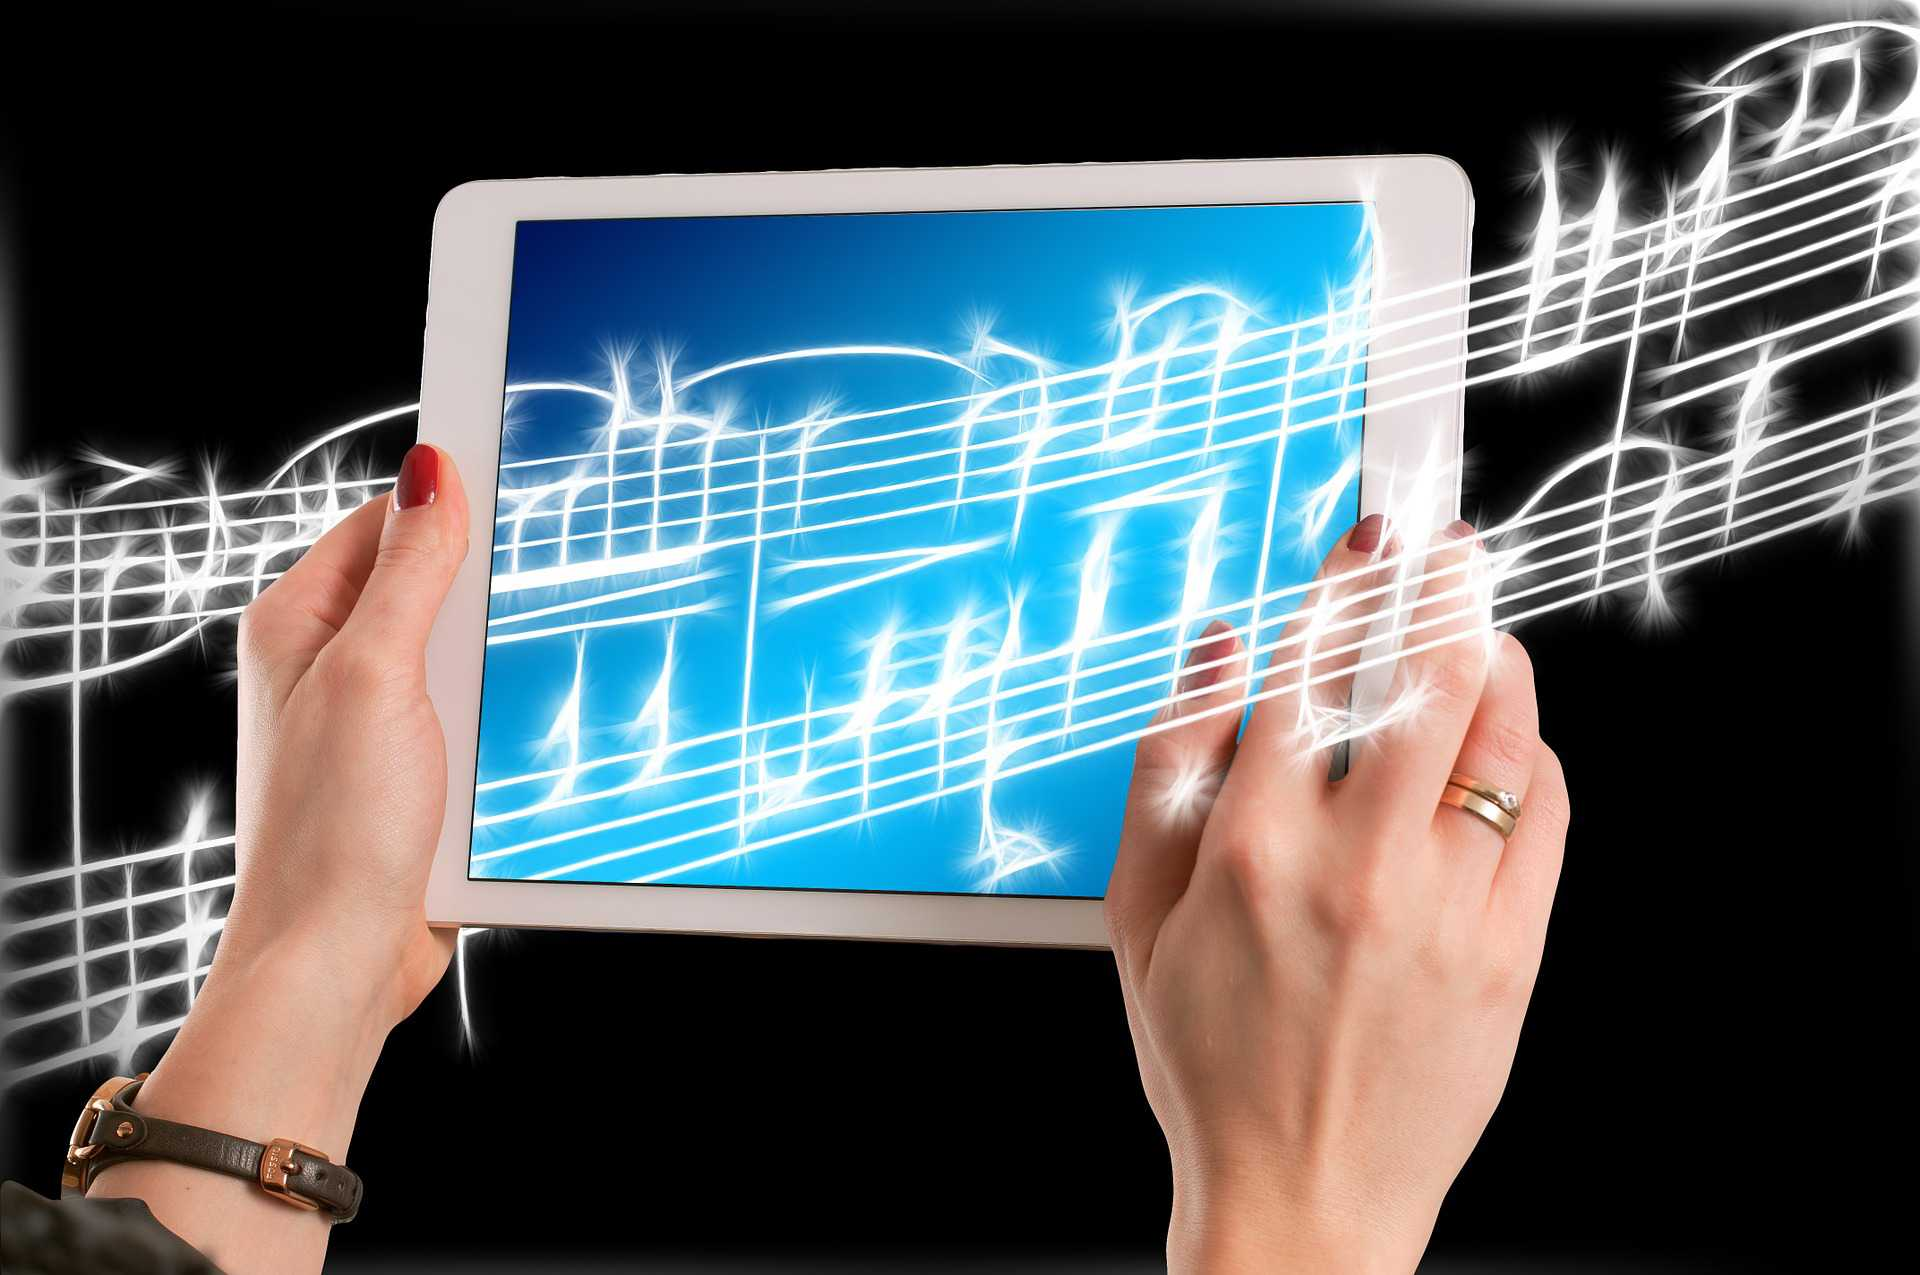 Learn to Play Piano on Your iPad